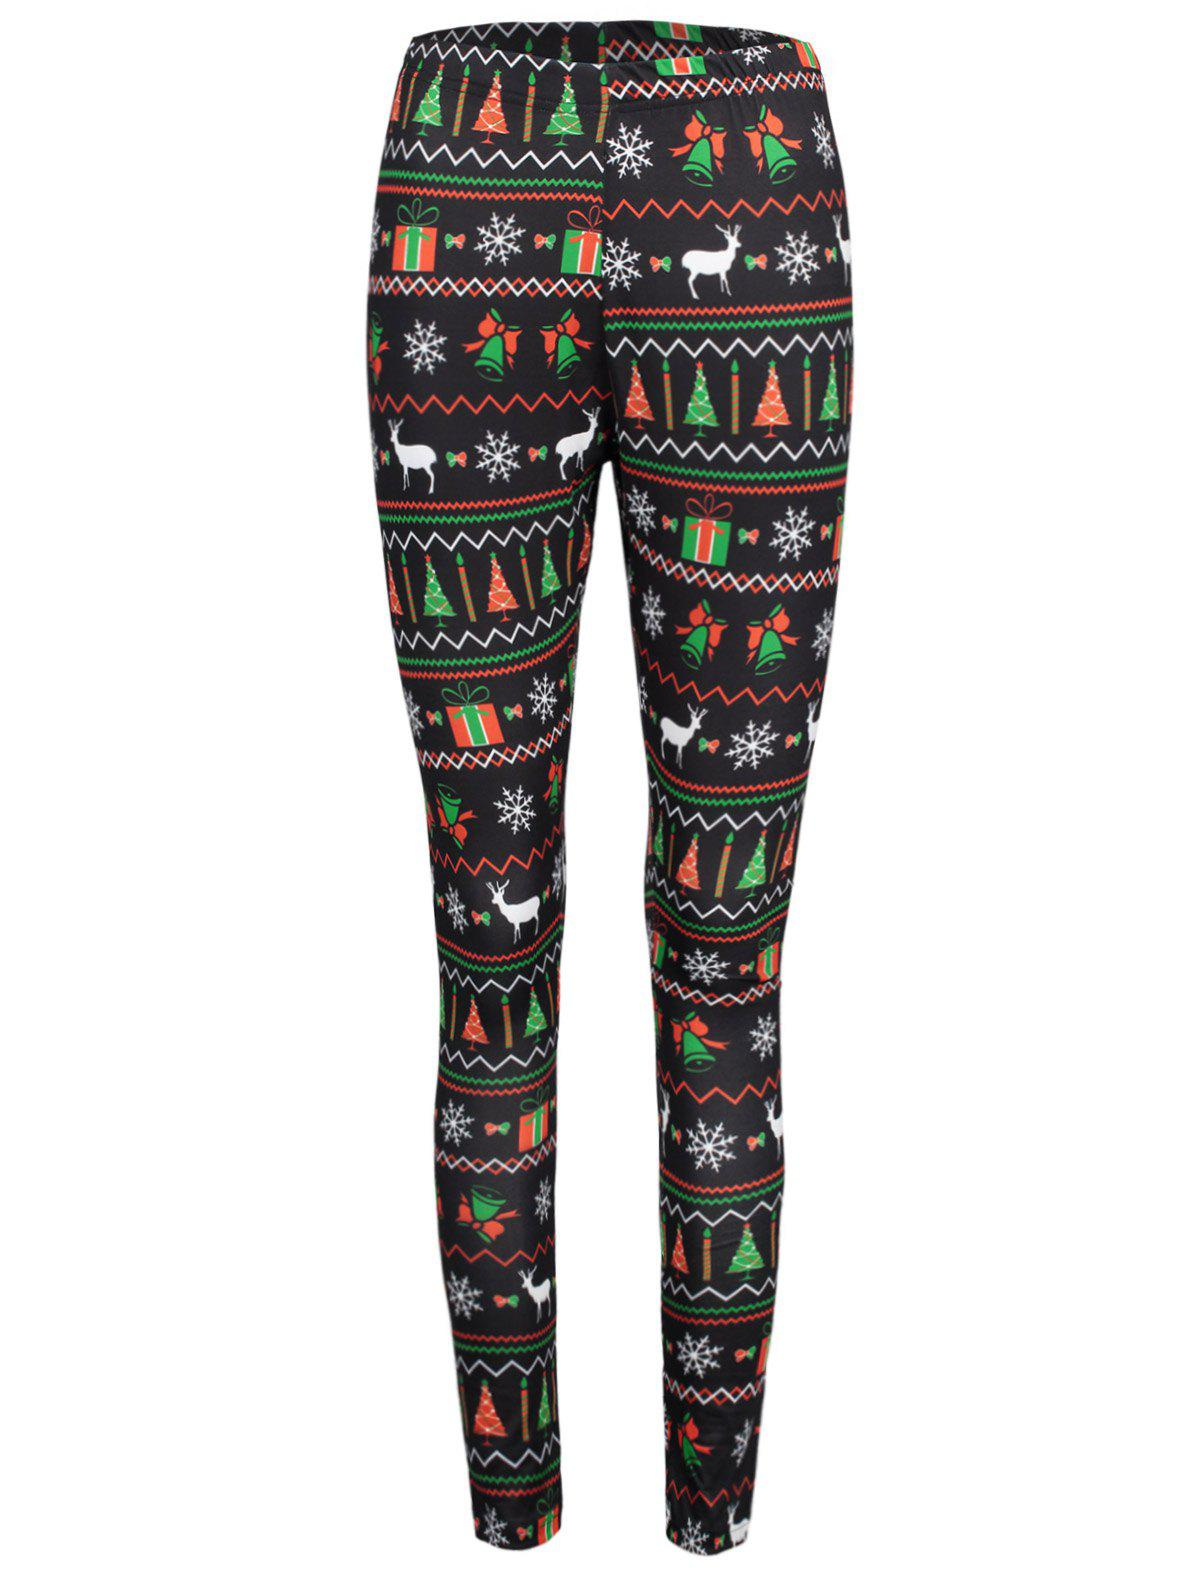 Christmas Ornaments Printed Elastic Waist Workout Leggings - COLORMIX L